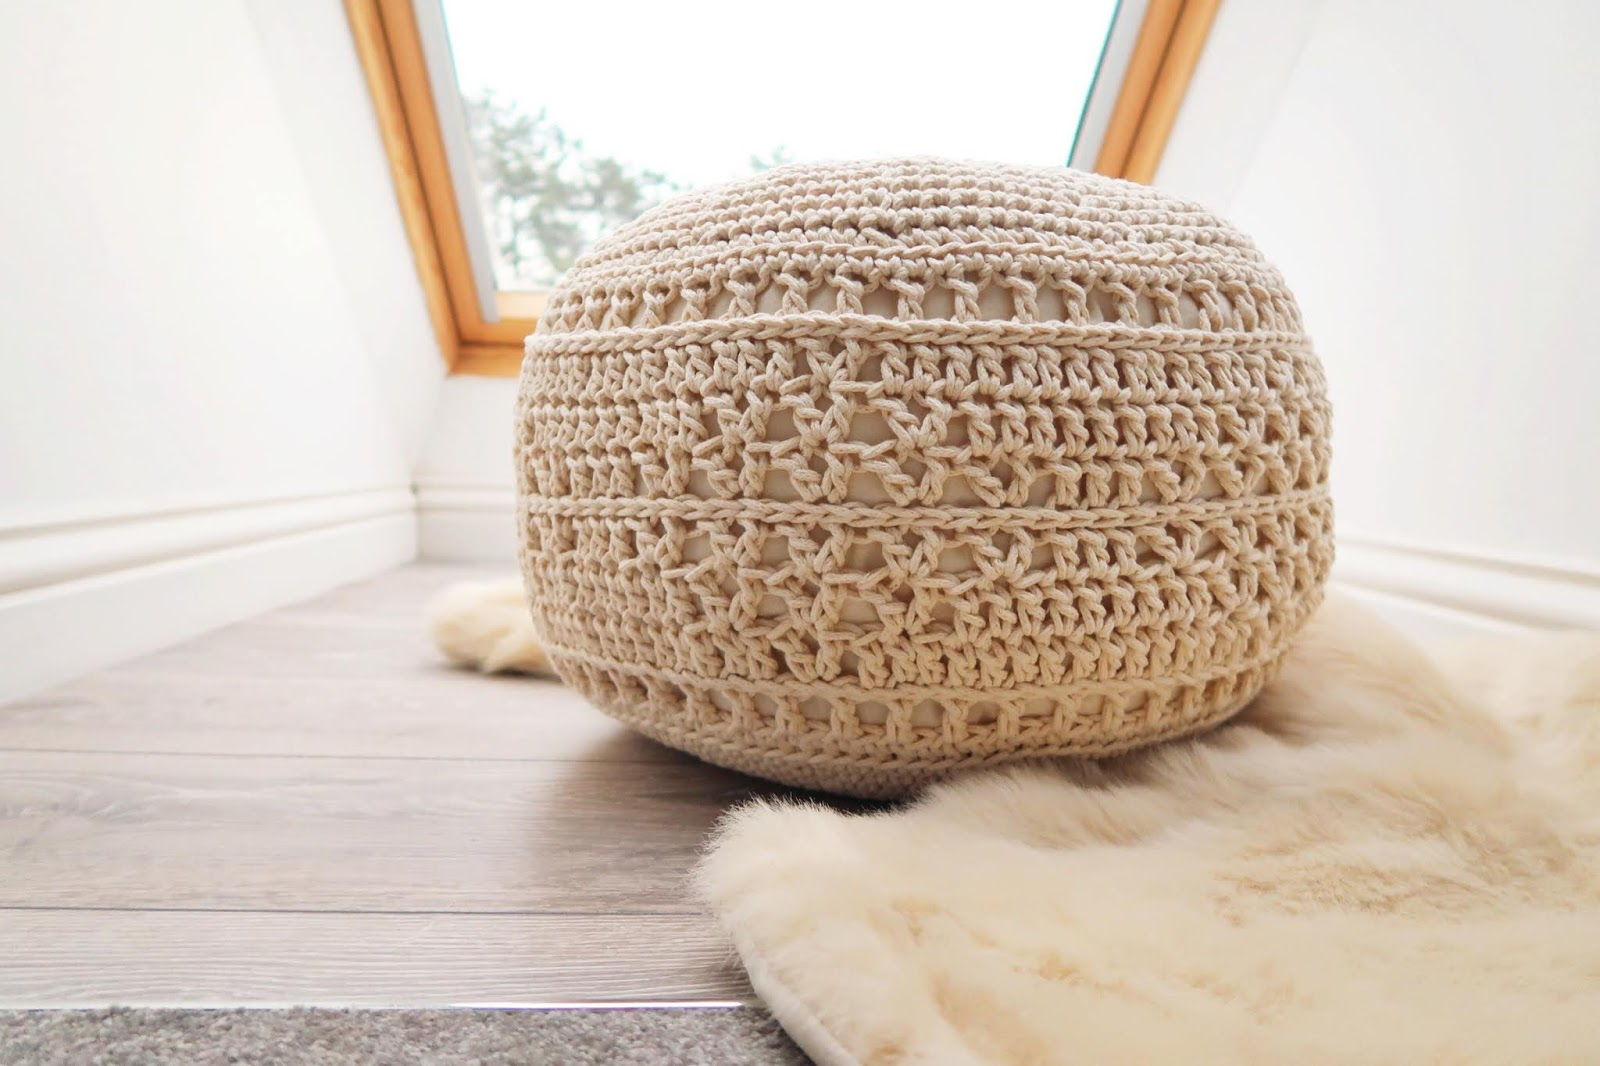 Crochet 'macrame' footstool pattern for Knitcraft